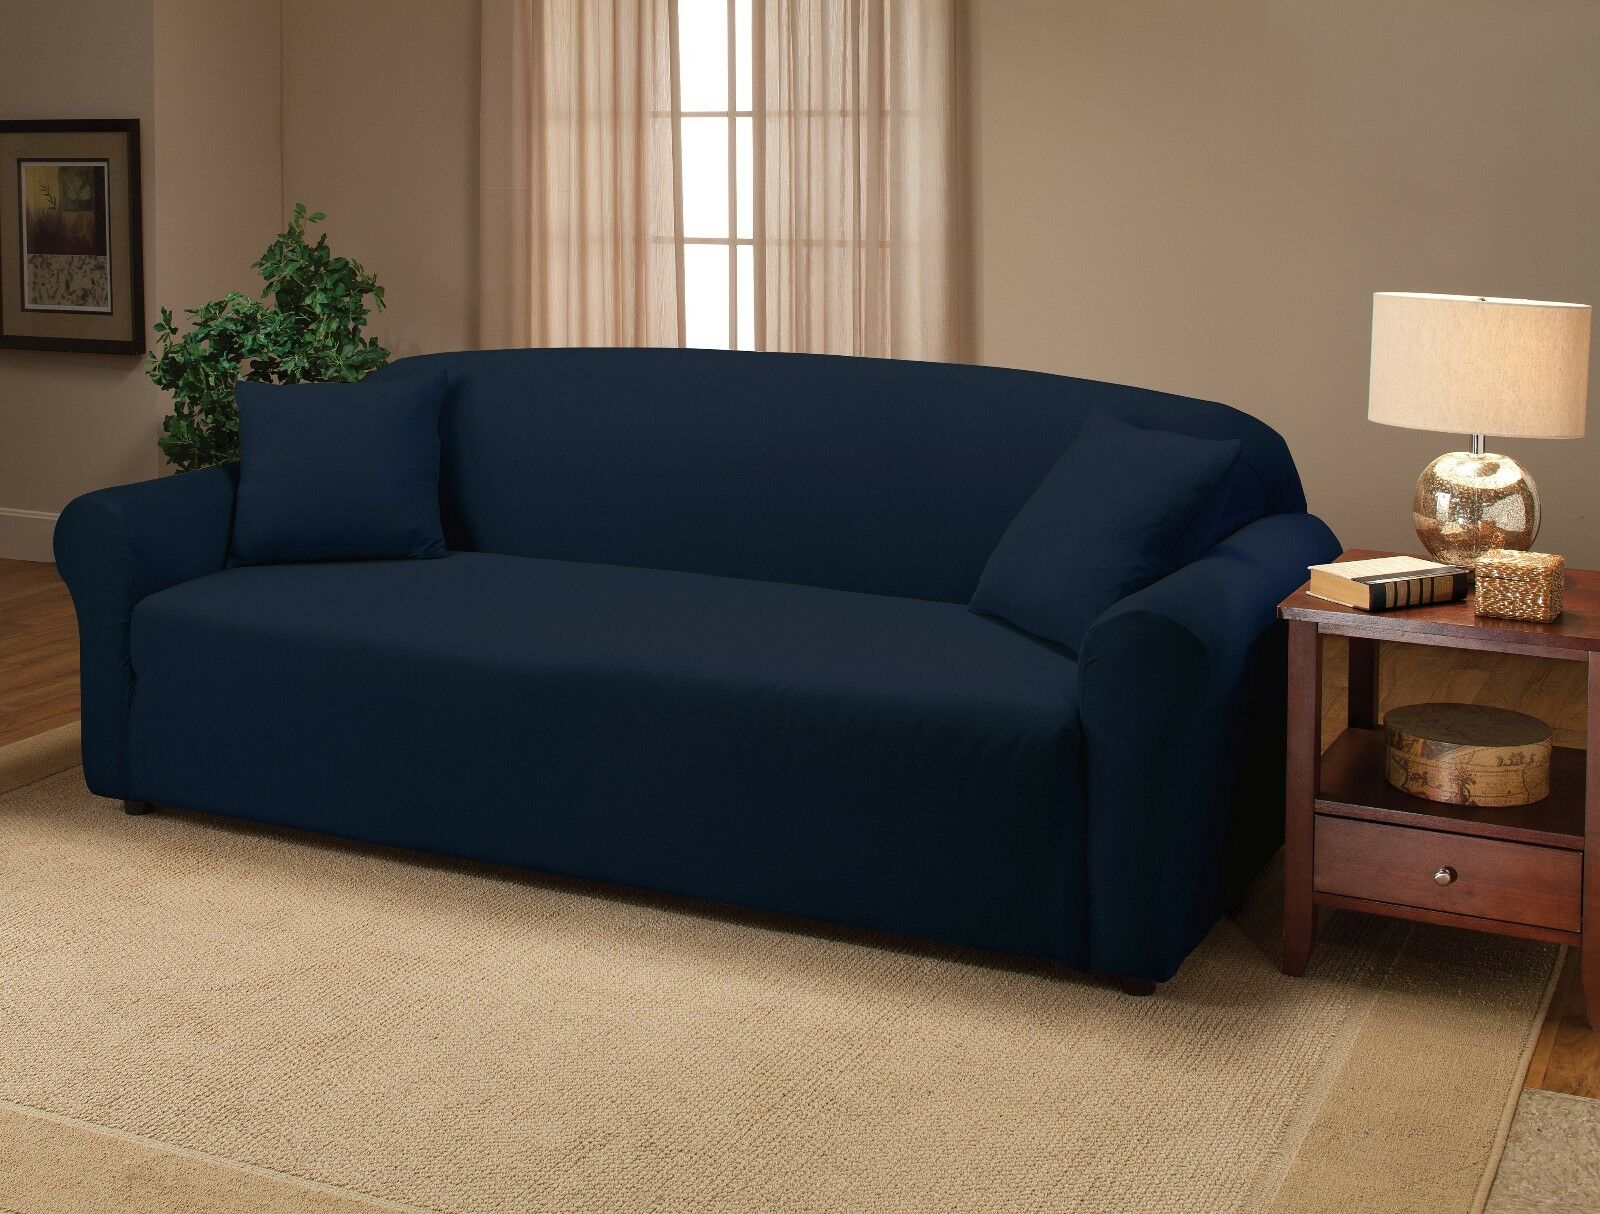 NAVY BLUE JERSEY COUCH STRETCH SLIPCOVER FURNITURE COVERS CHAIR